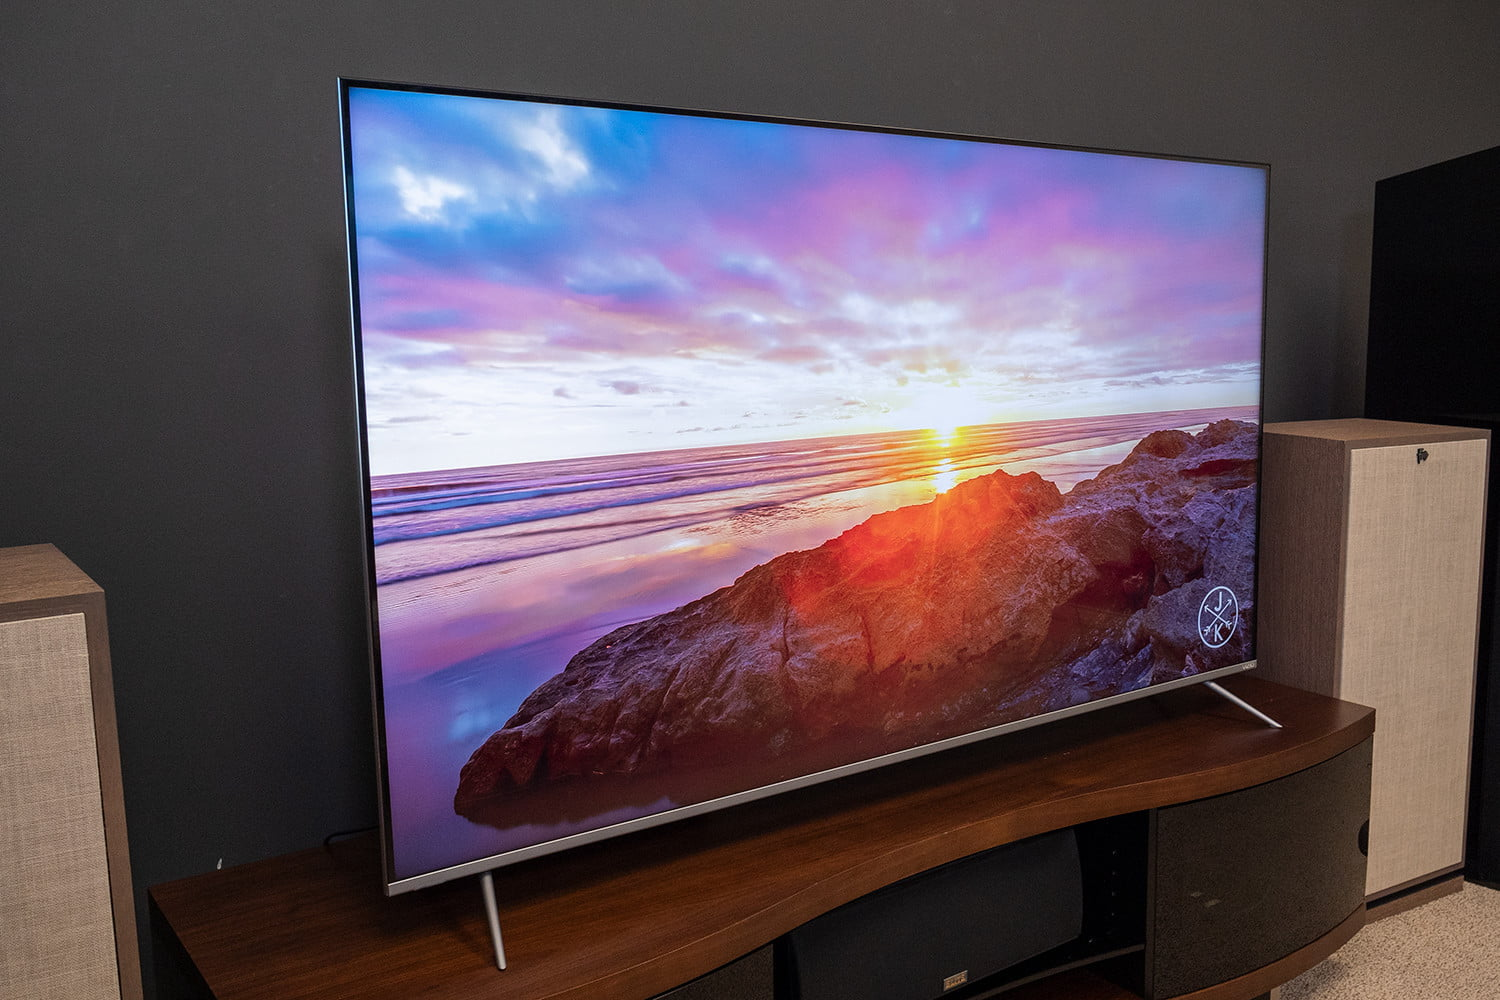 Samsung Flat Screen Tv Price Best Tvs For 2019 Digital Trends